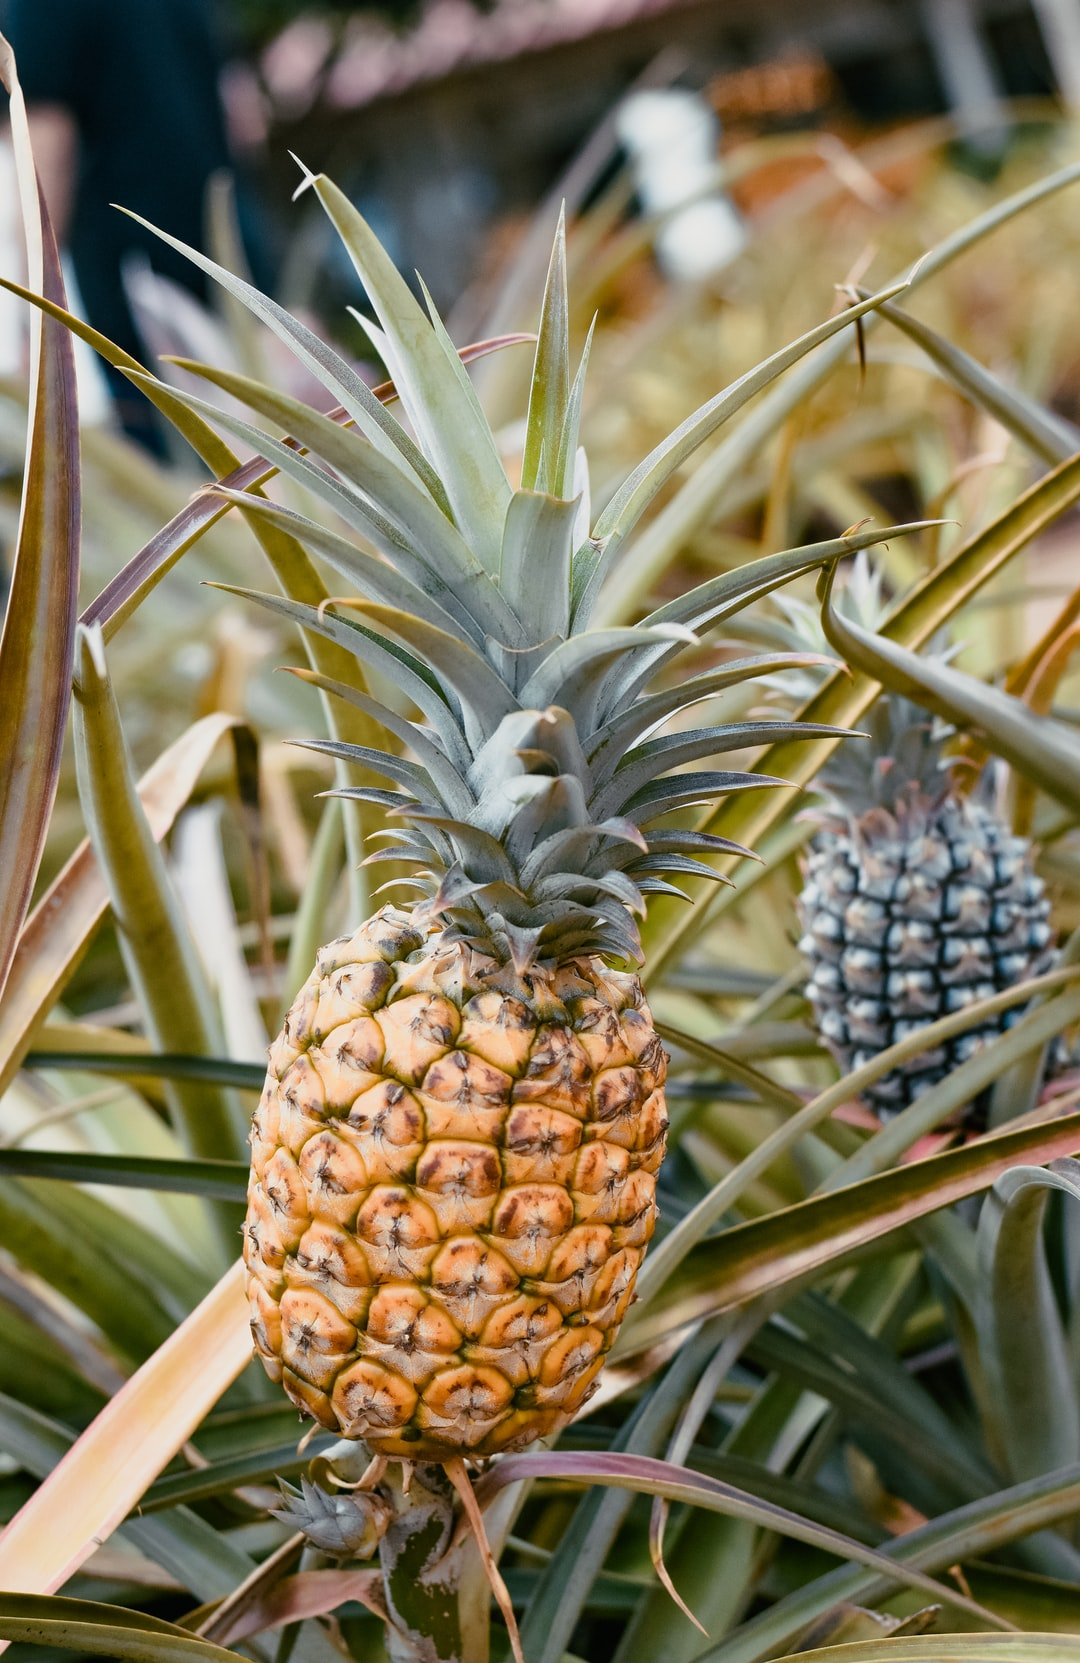 Pineapple at the Dole Pineapple plantation